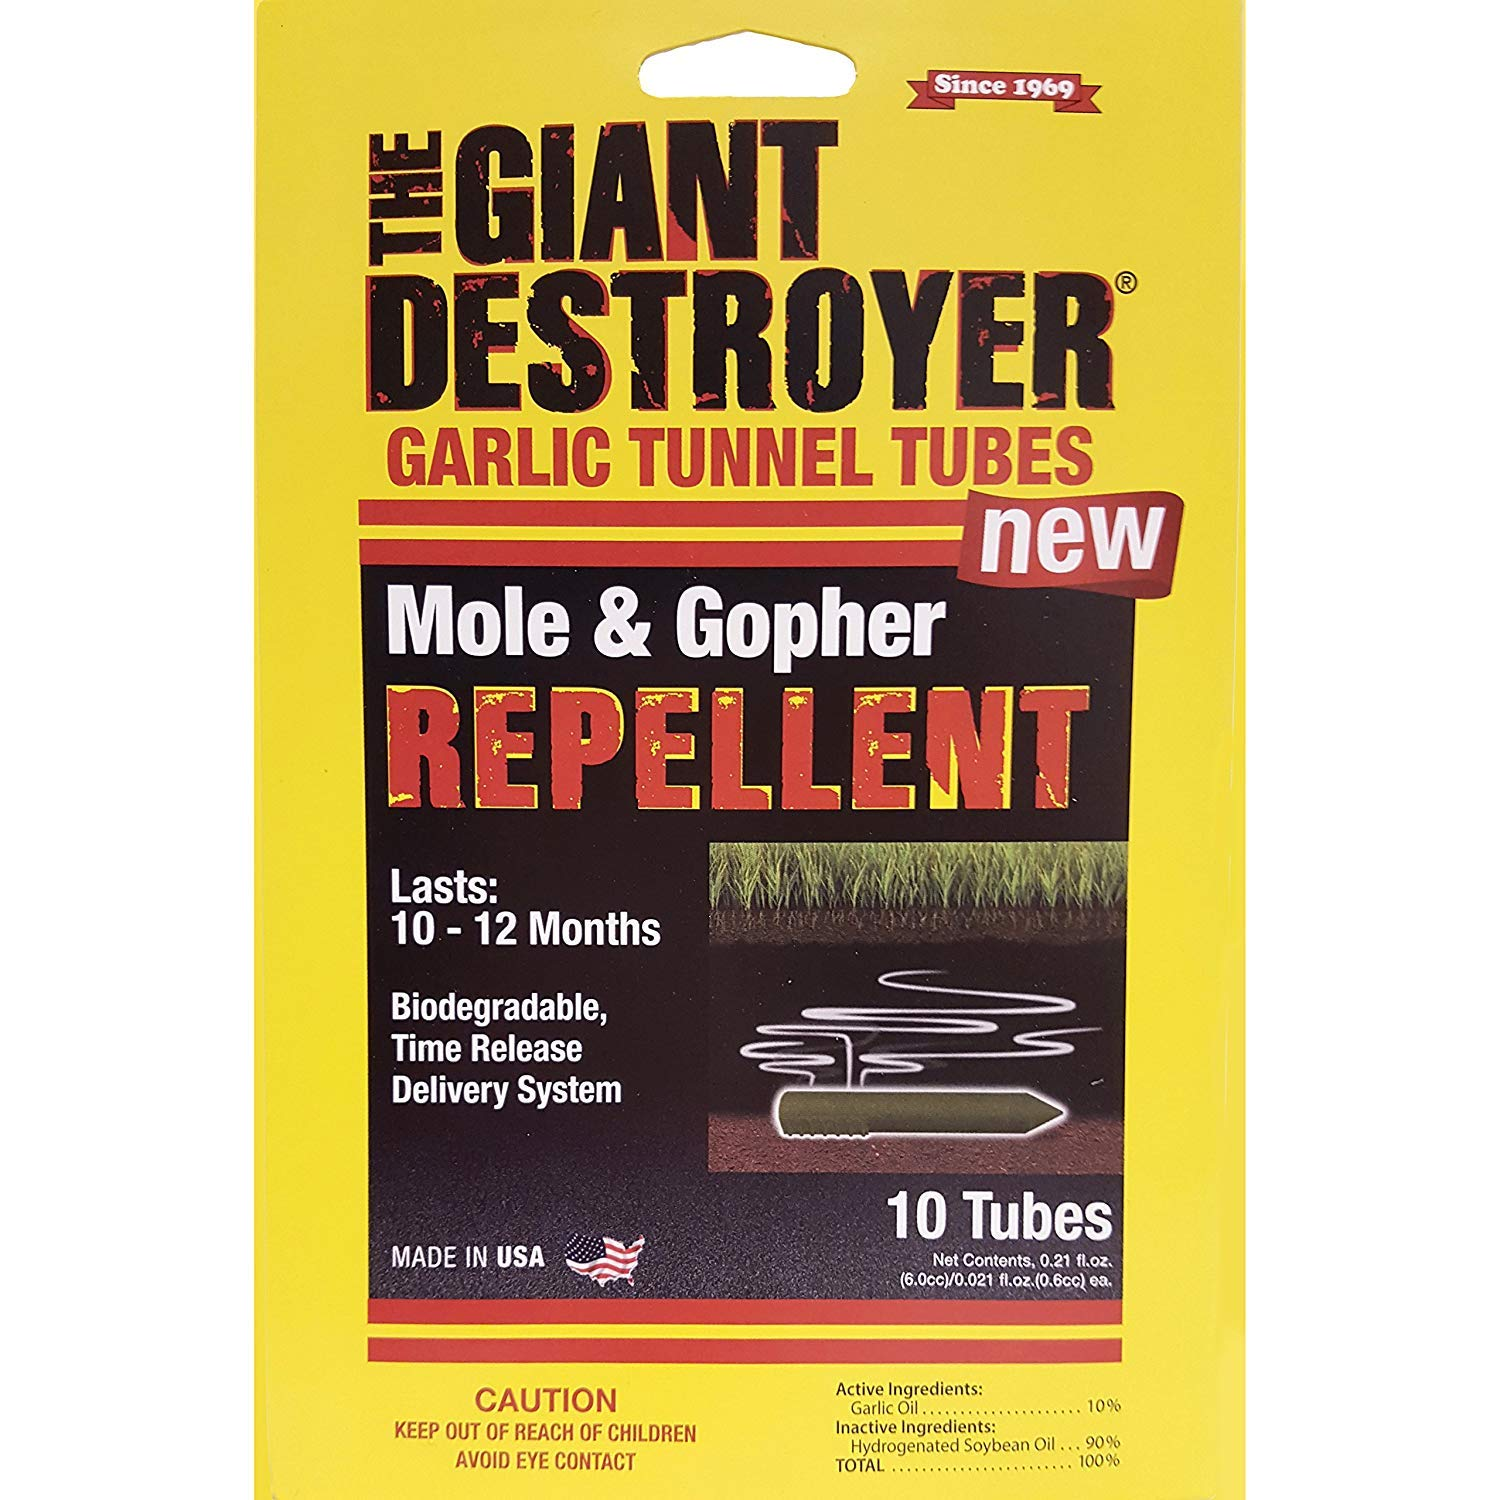 The Giant Destroyer Solution to Control Moles, Gophers, Skunks and Other Burrowing Rodents; NO Dealing w/Dead Pest, Better Than Traps (Garlic Tunnel Tubes (120 Total Tubes)) by The Giant Destroyer